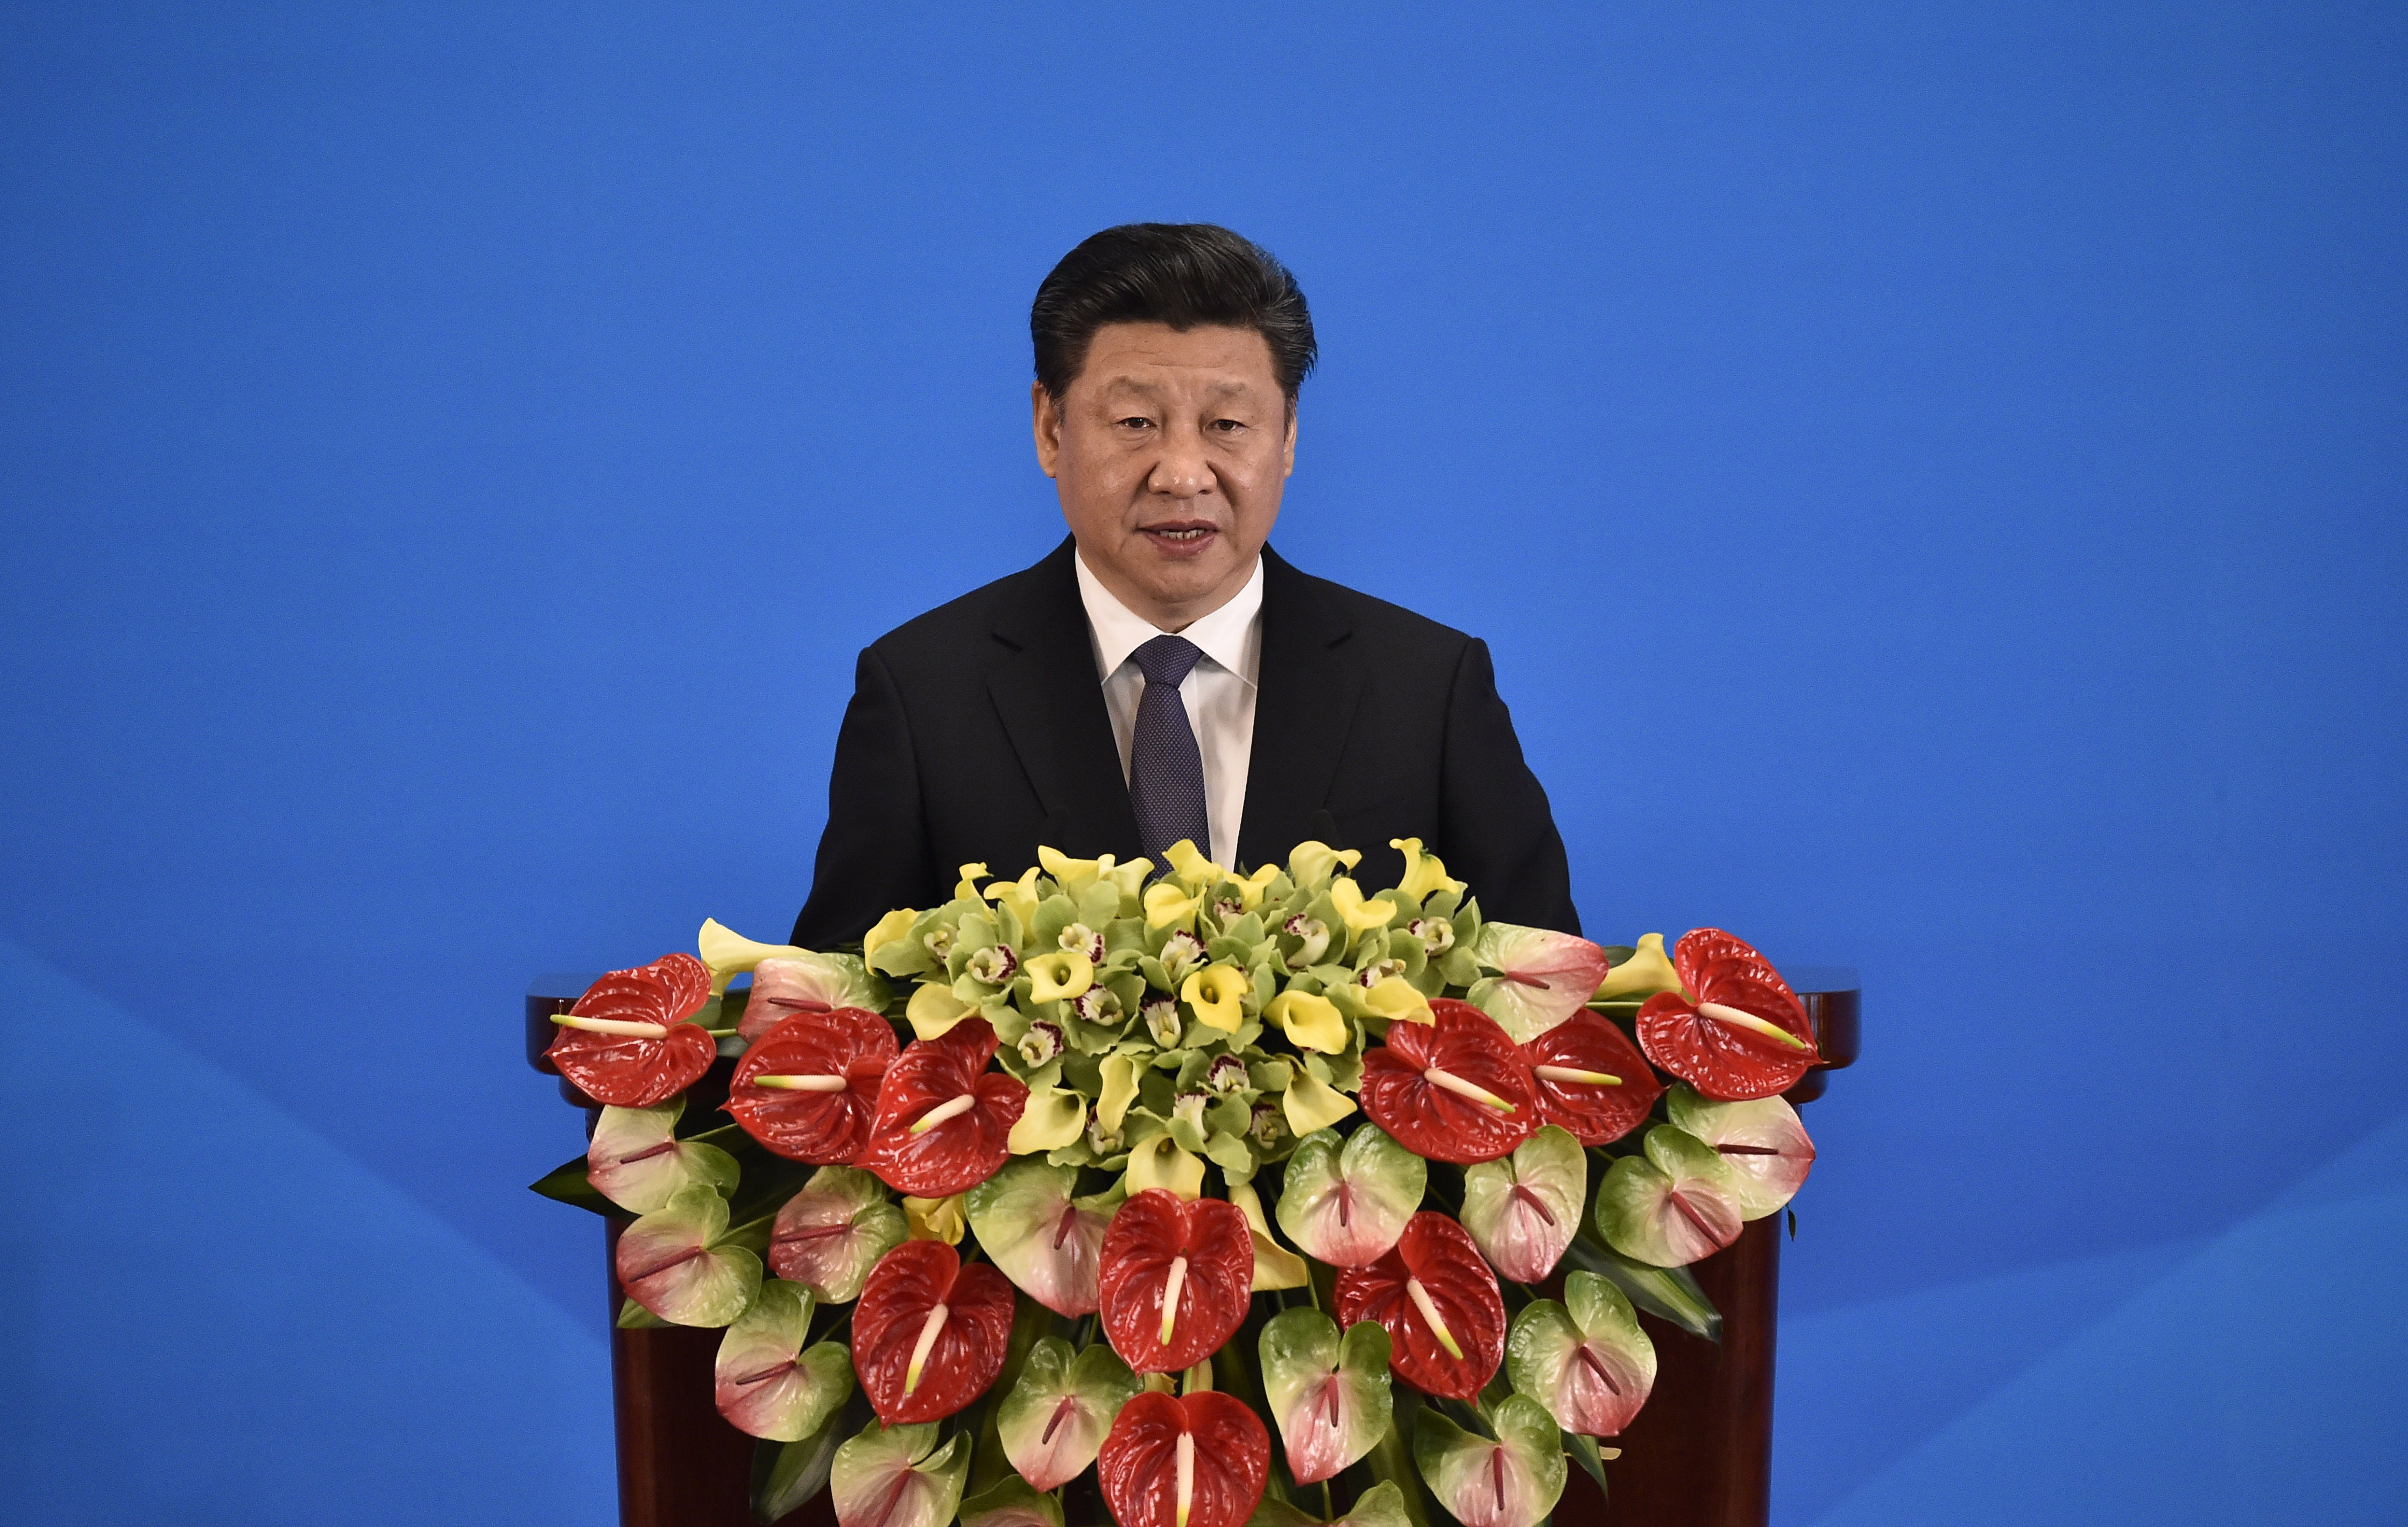 China's President Xi Jinping delivers a speech at the opening ceremony of the fifth regular foreign ministers' meeting of the Conference on Interaction and Confidence Building Measures in Asia (CICA)  at the Diaoyutai State Guesthouse on April 28, 2016 in Beijing, China.